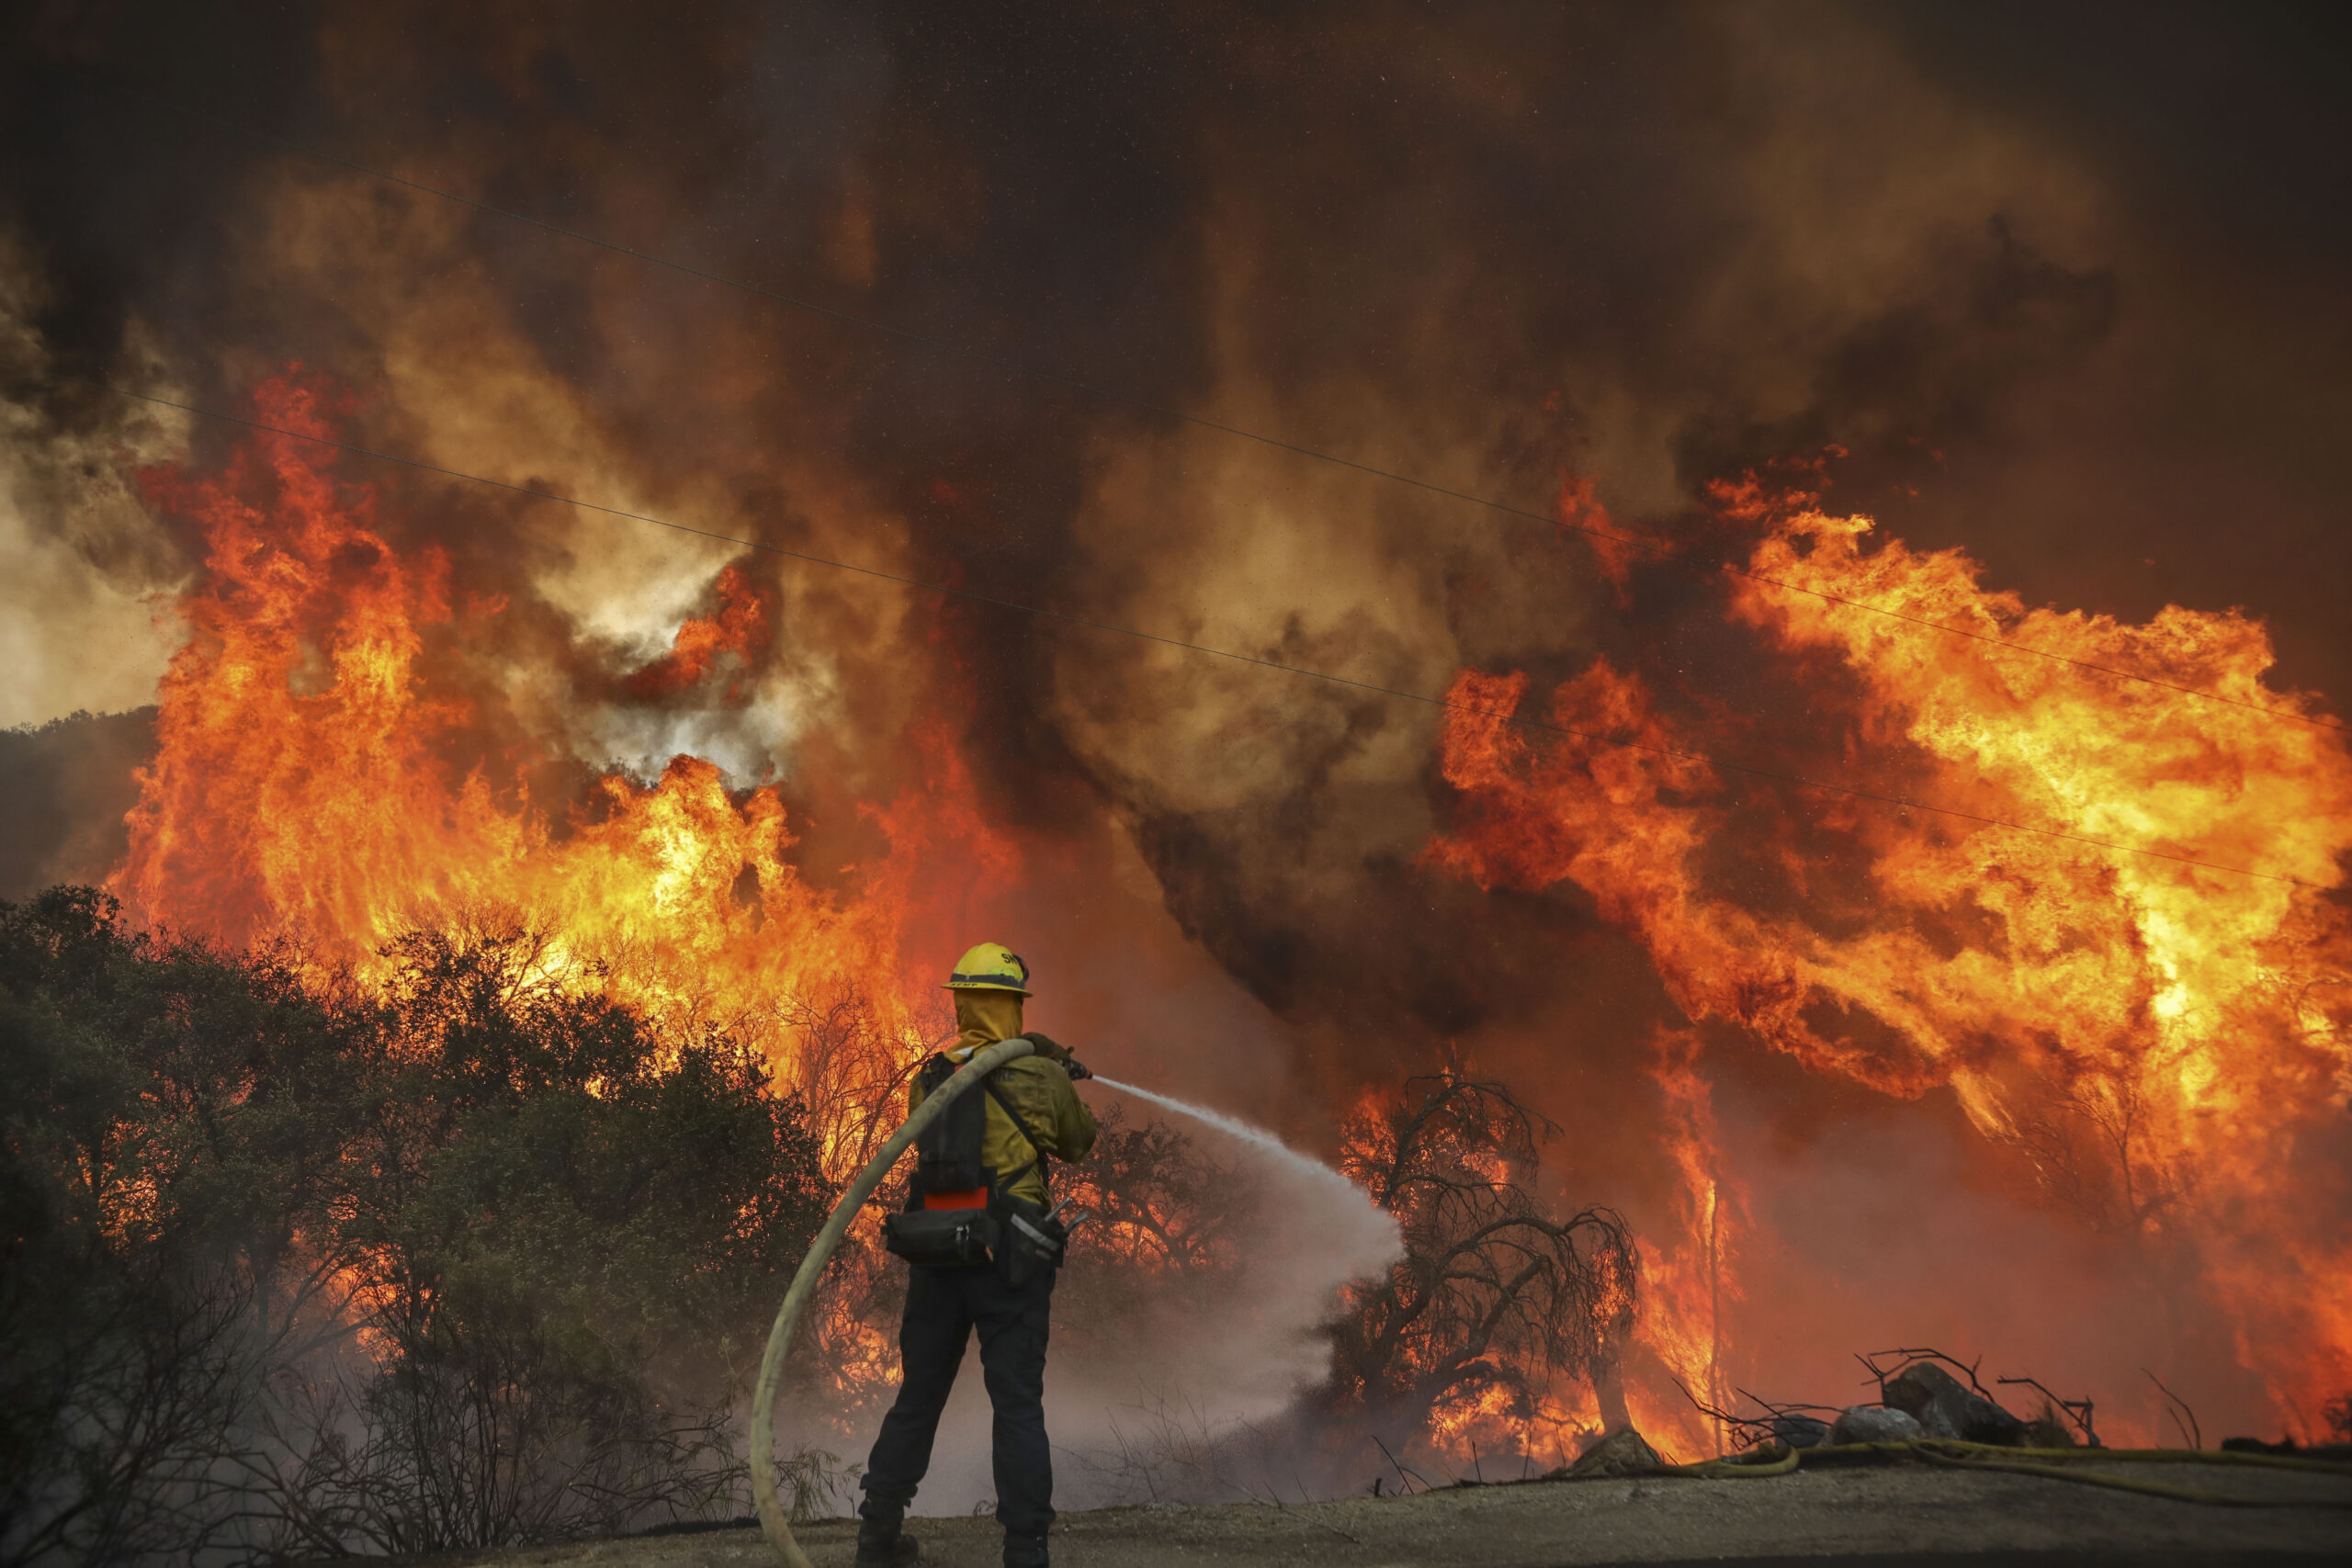 San Miguel County Firefighters battle a brush fire along Japatul Road during the Valley Fire in Jamul, California on Sept. 6, 2020 Credit: Sandy Huffaker/AFP via Getty Images